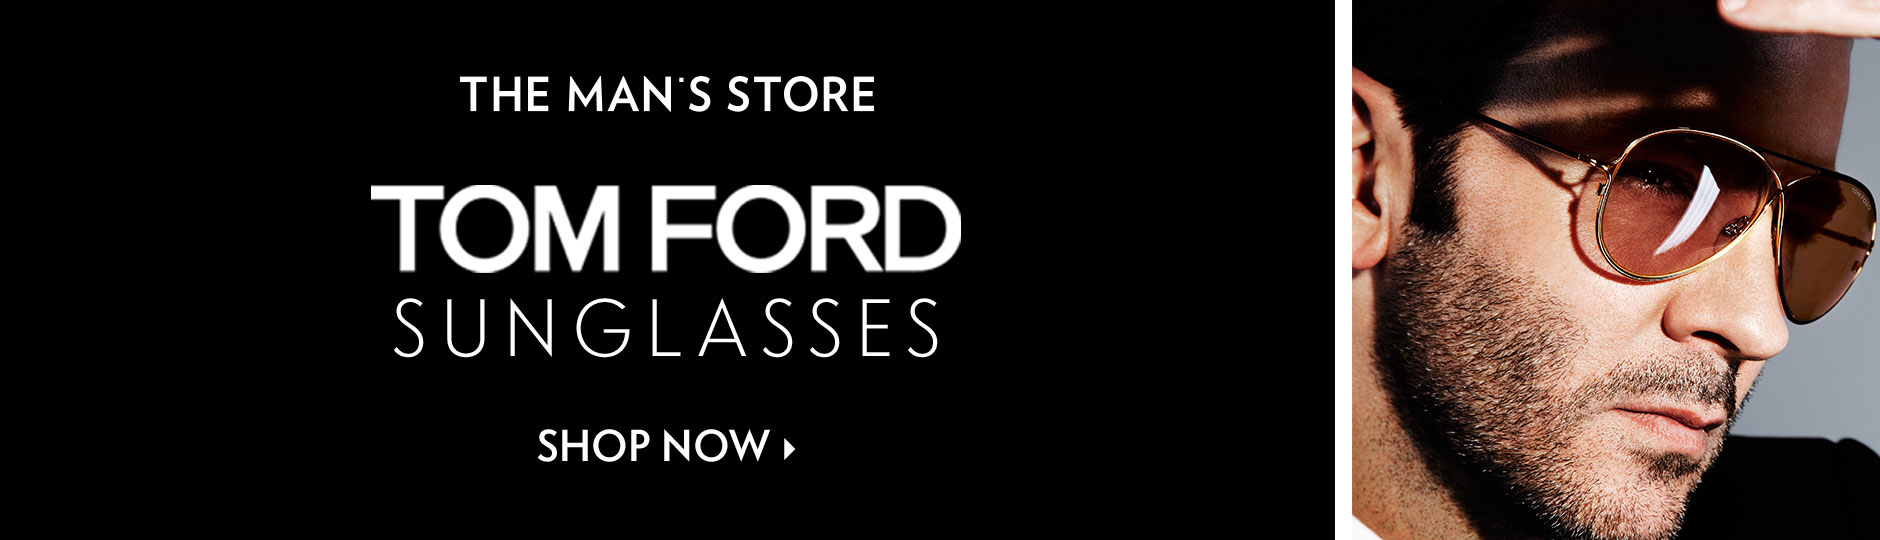 The Man's Store: Tom Ford - Sunglasses